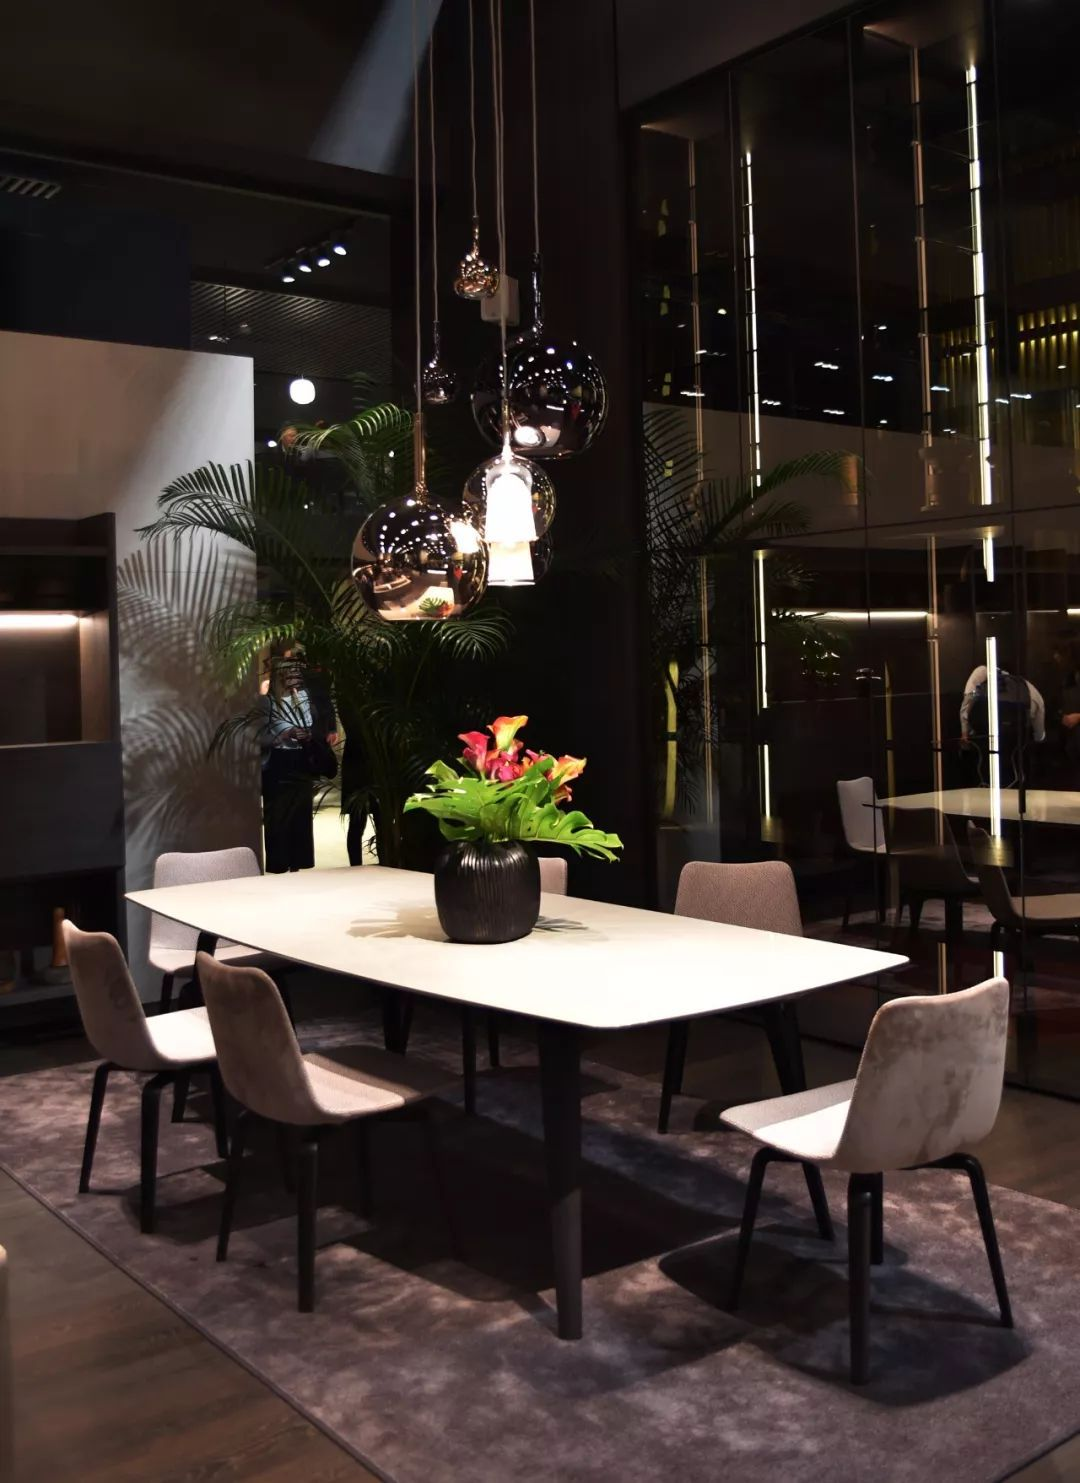 Pin By Kaiyuen On 餐厅 Restaurant Home Decor Dining Table Home